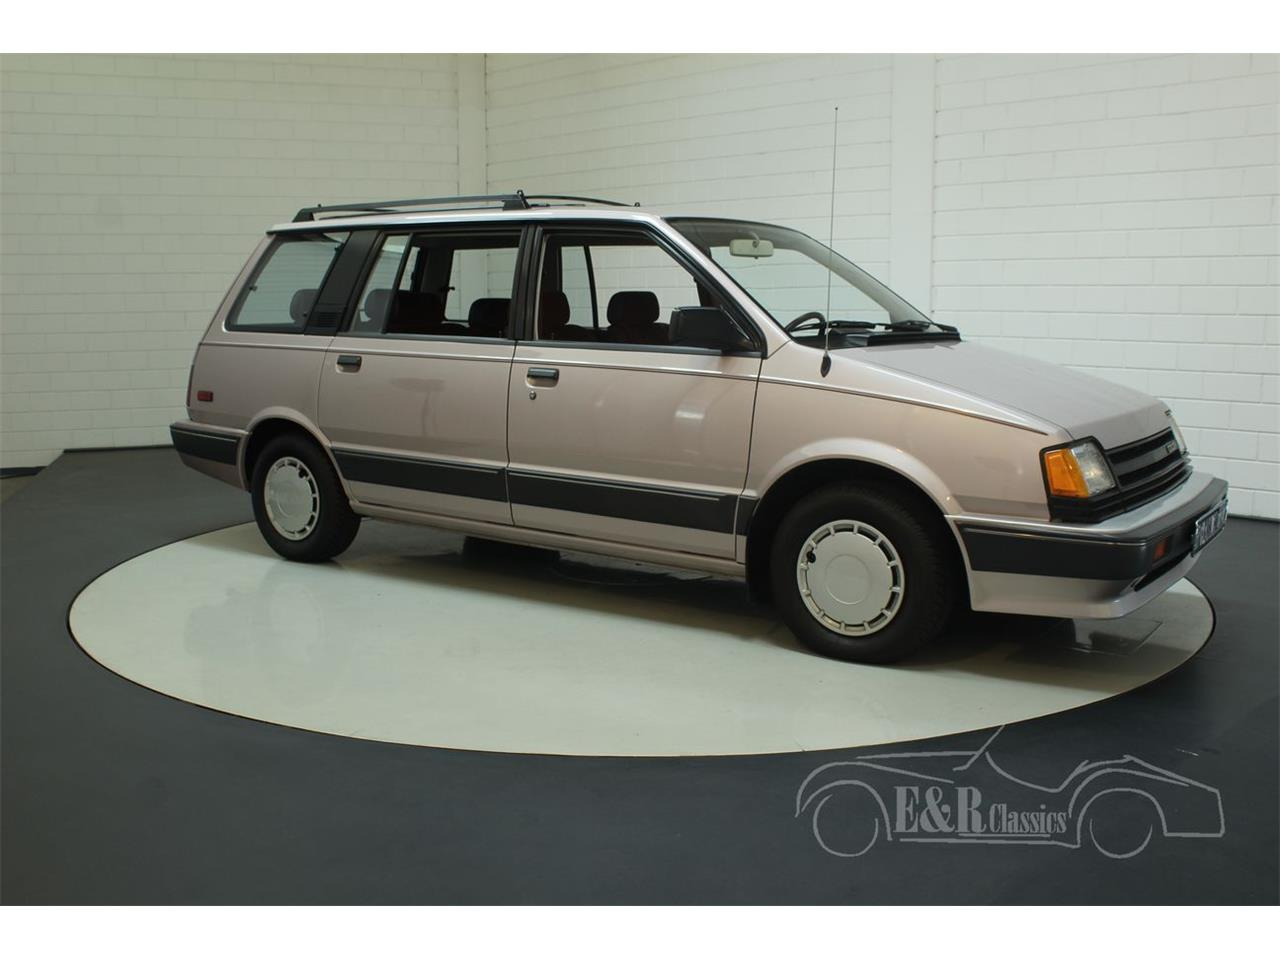 Large Picture of '87 Dodge Colt located in [nl] Pays-Bas - $16,900.00 - PVV4